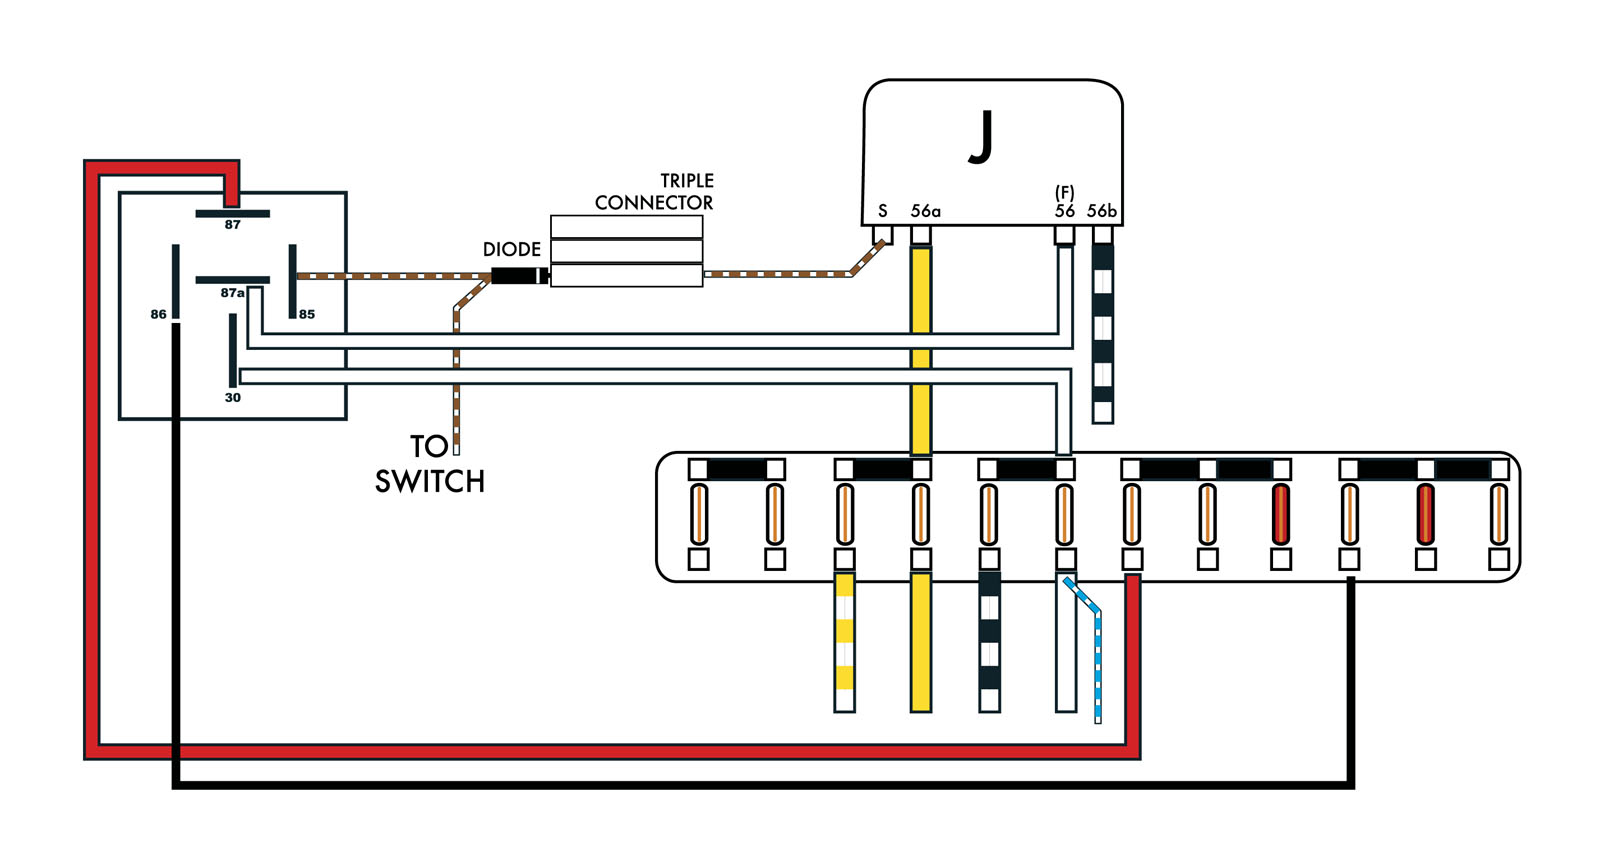 headlight dimmer switch wiring diagram 2004 international 4300 a c thesamba beetle late model super 1968 up view